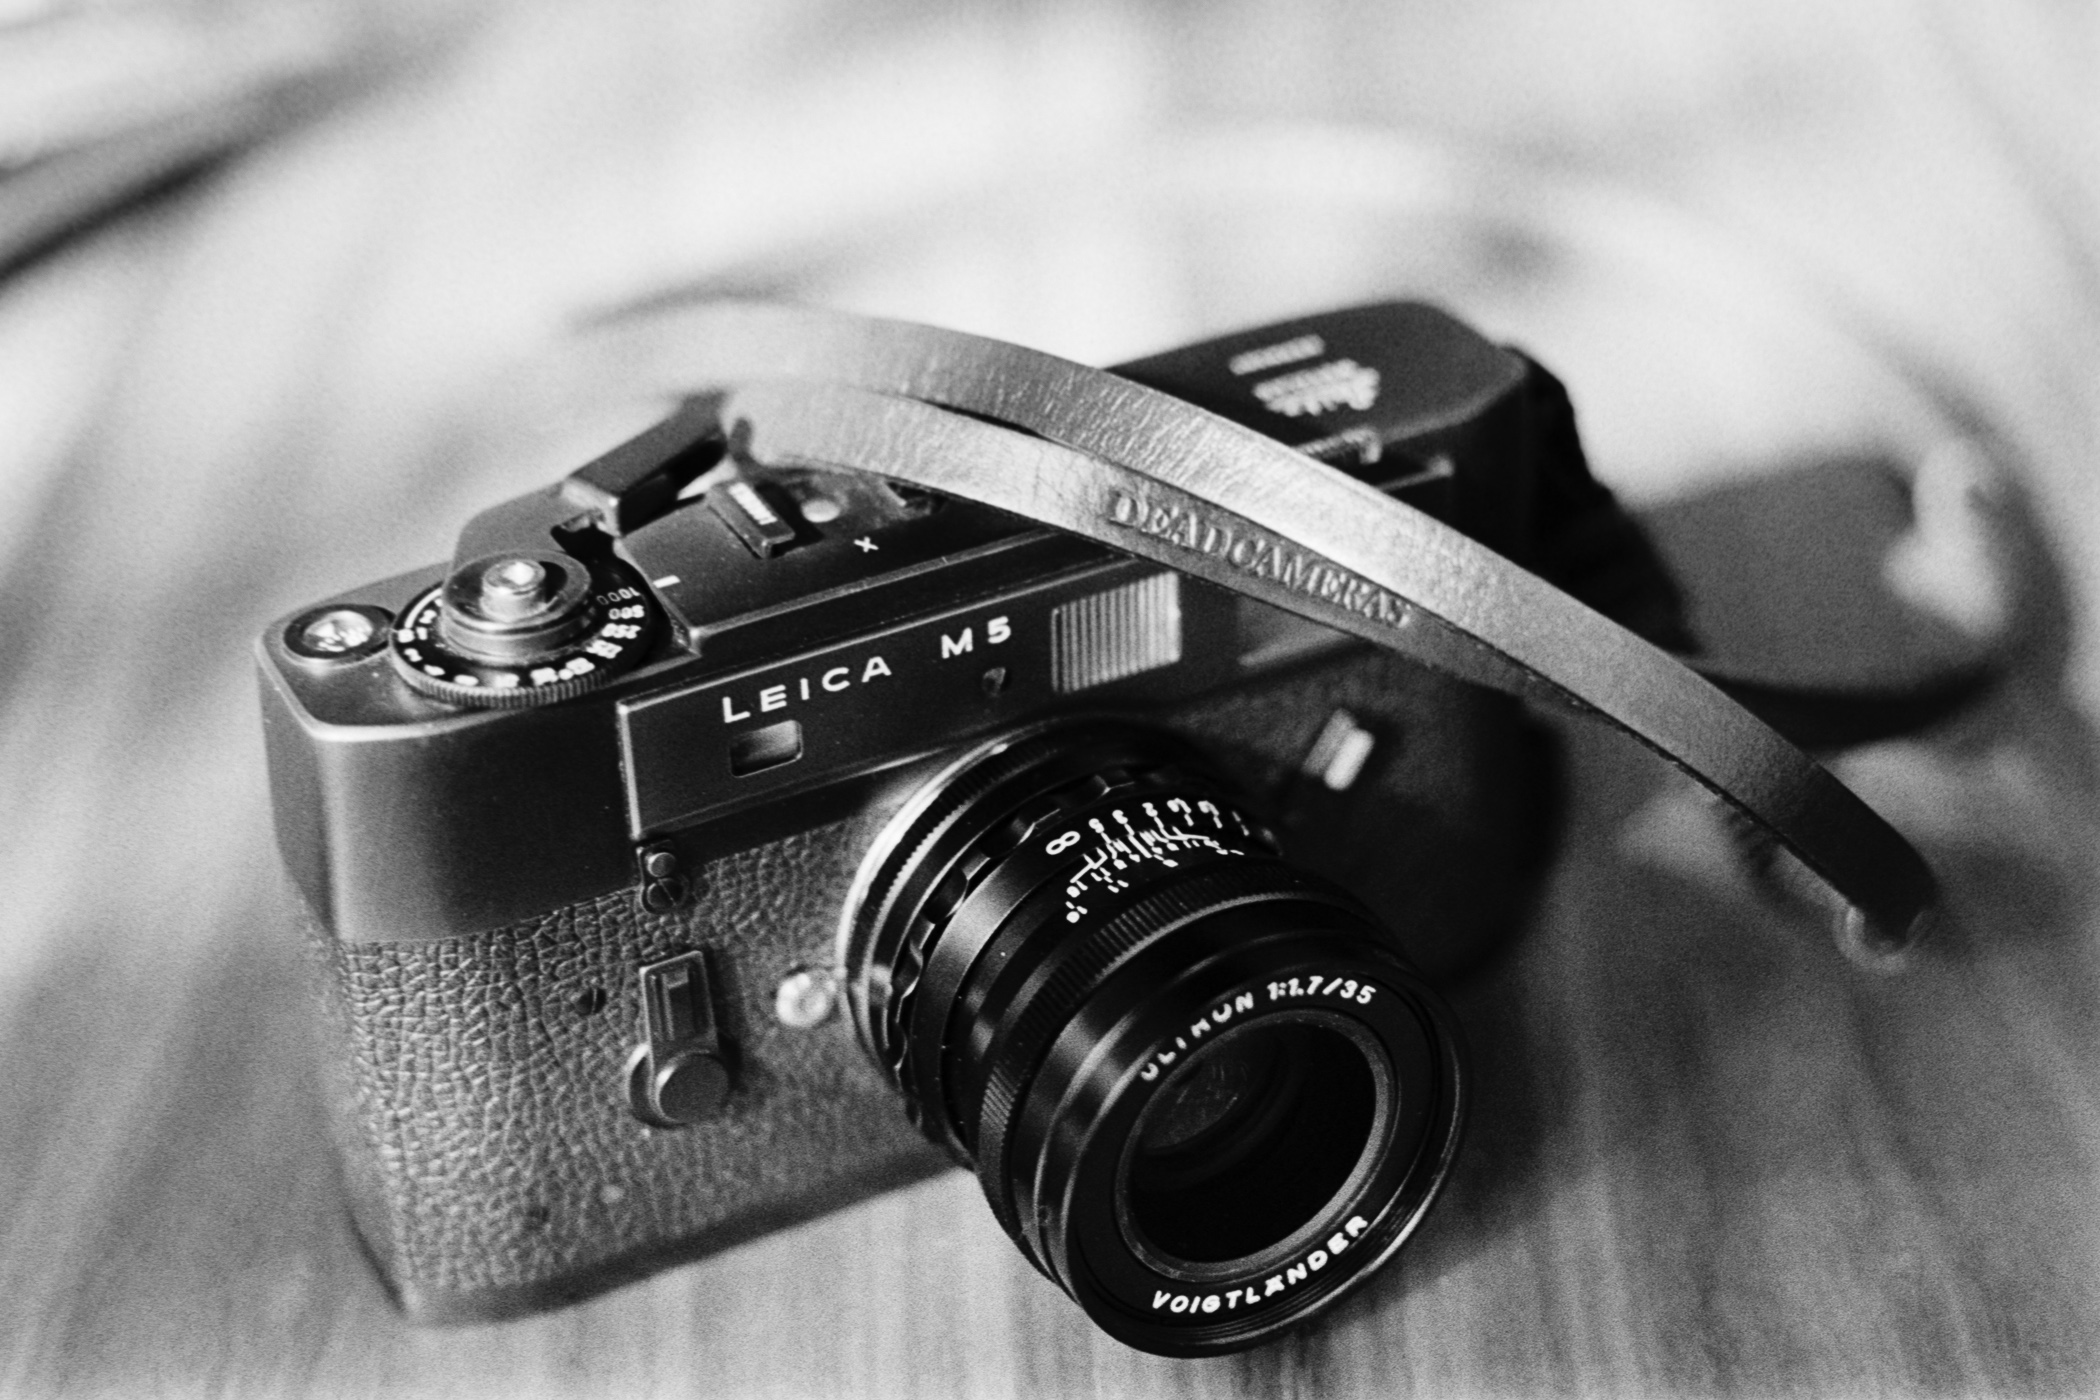 Leica M5 camera, captured with Kodak TriX 400 B&W film, Nikon FE 35mm camera